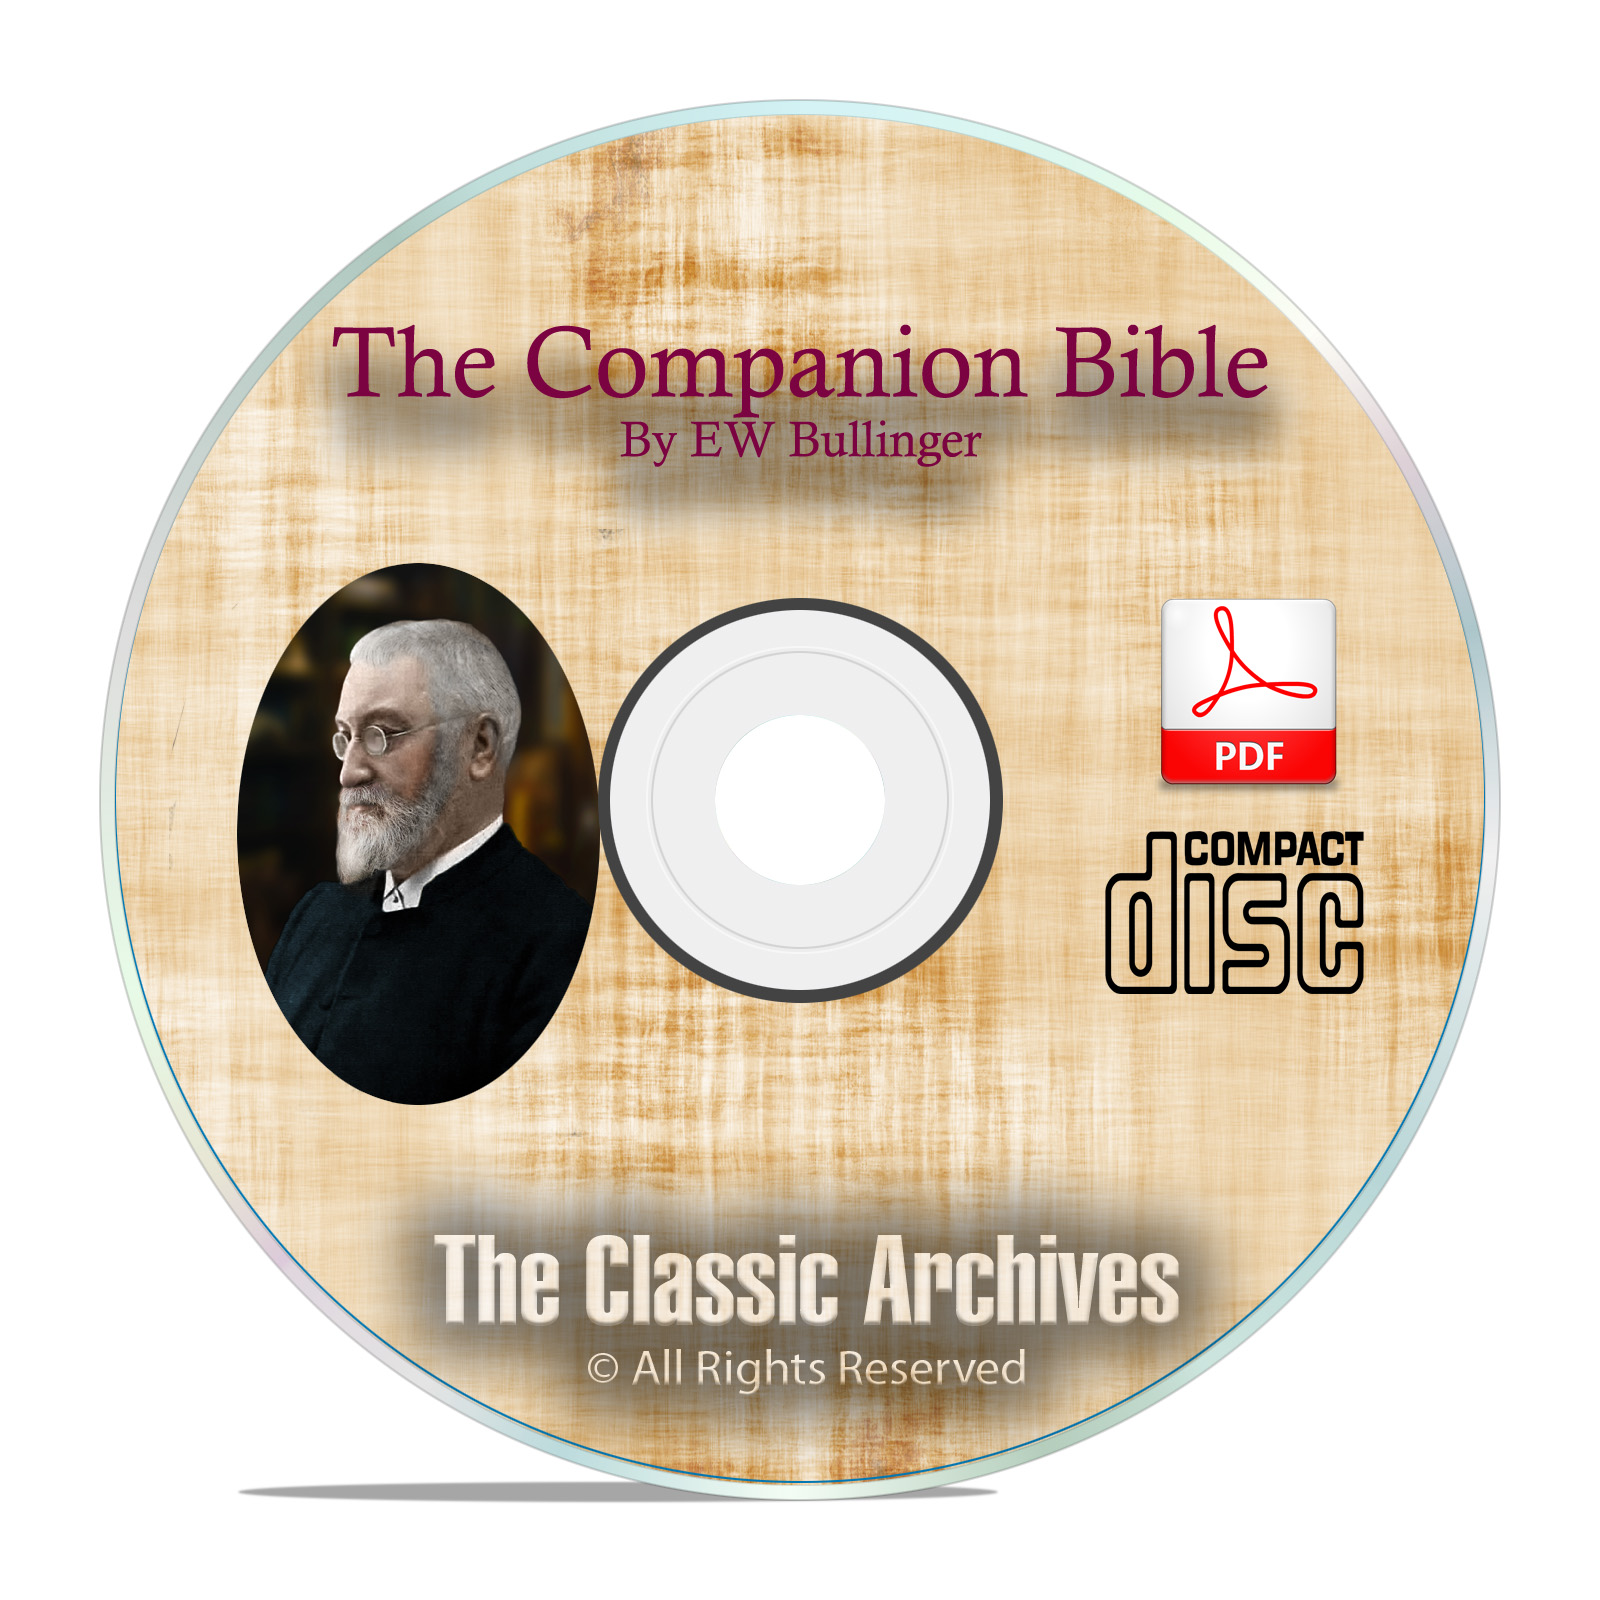 The Companion Bible, By E.W. Bullinger, Christian Bible Study Research CD